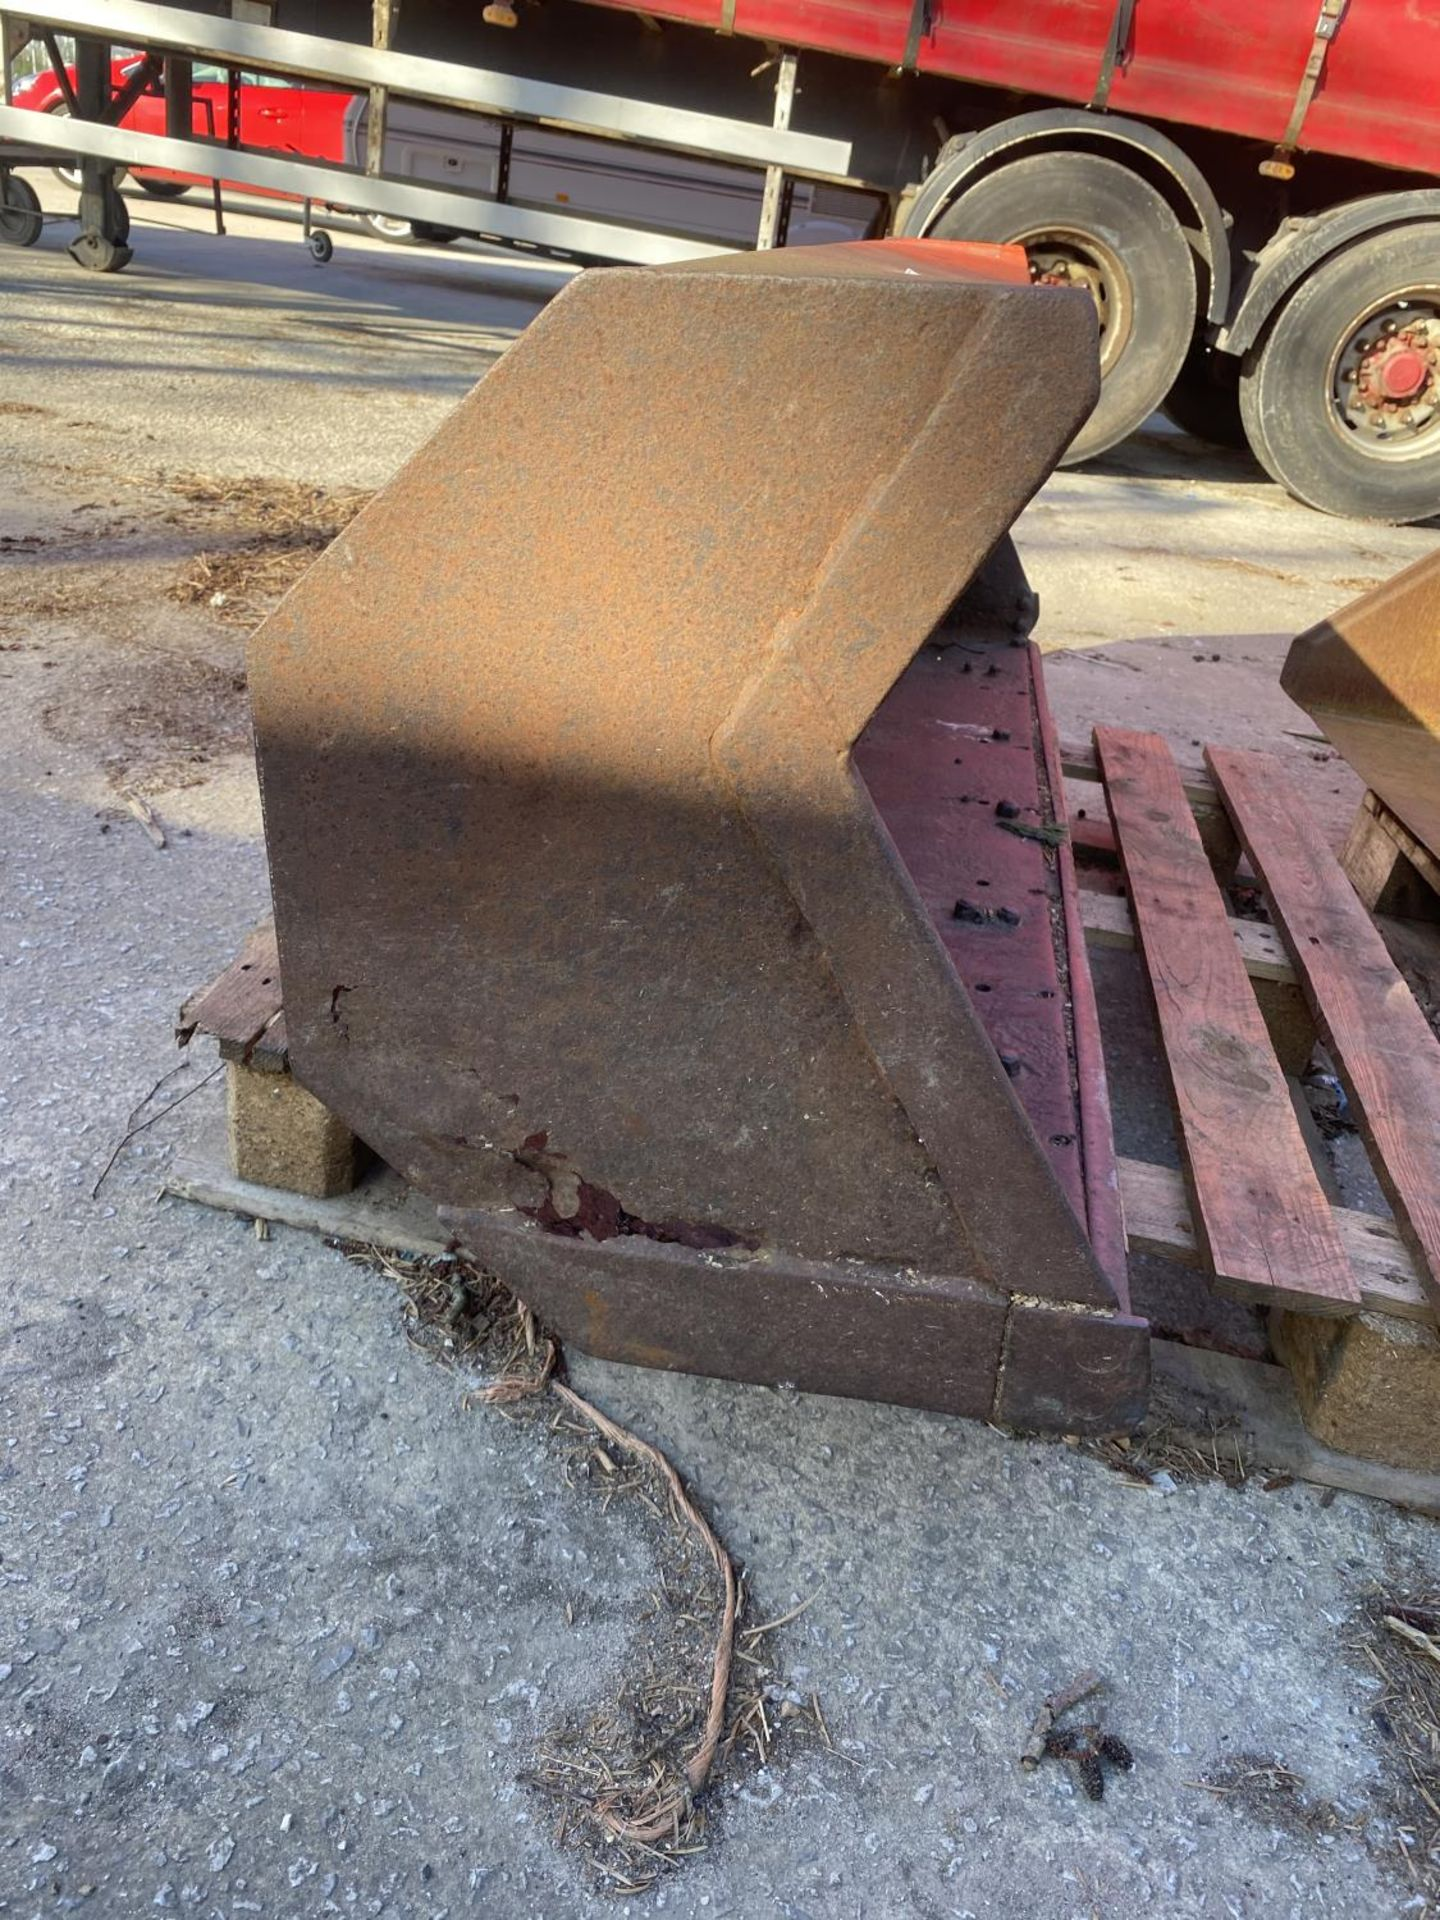 A FORE END LOADER BUCKET (FITS LOT 50) - Image 2 of 5